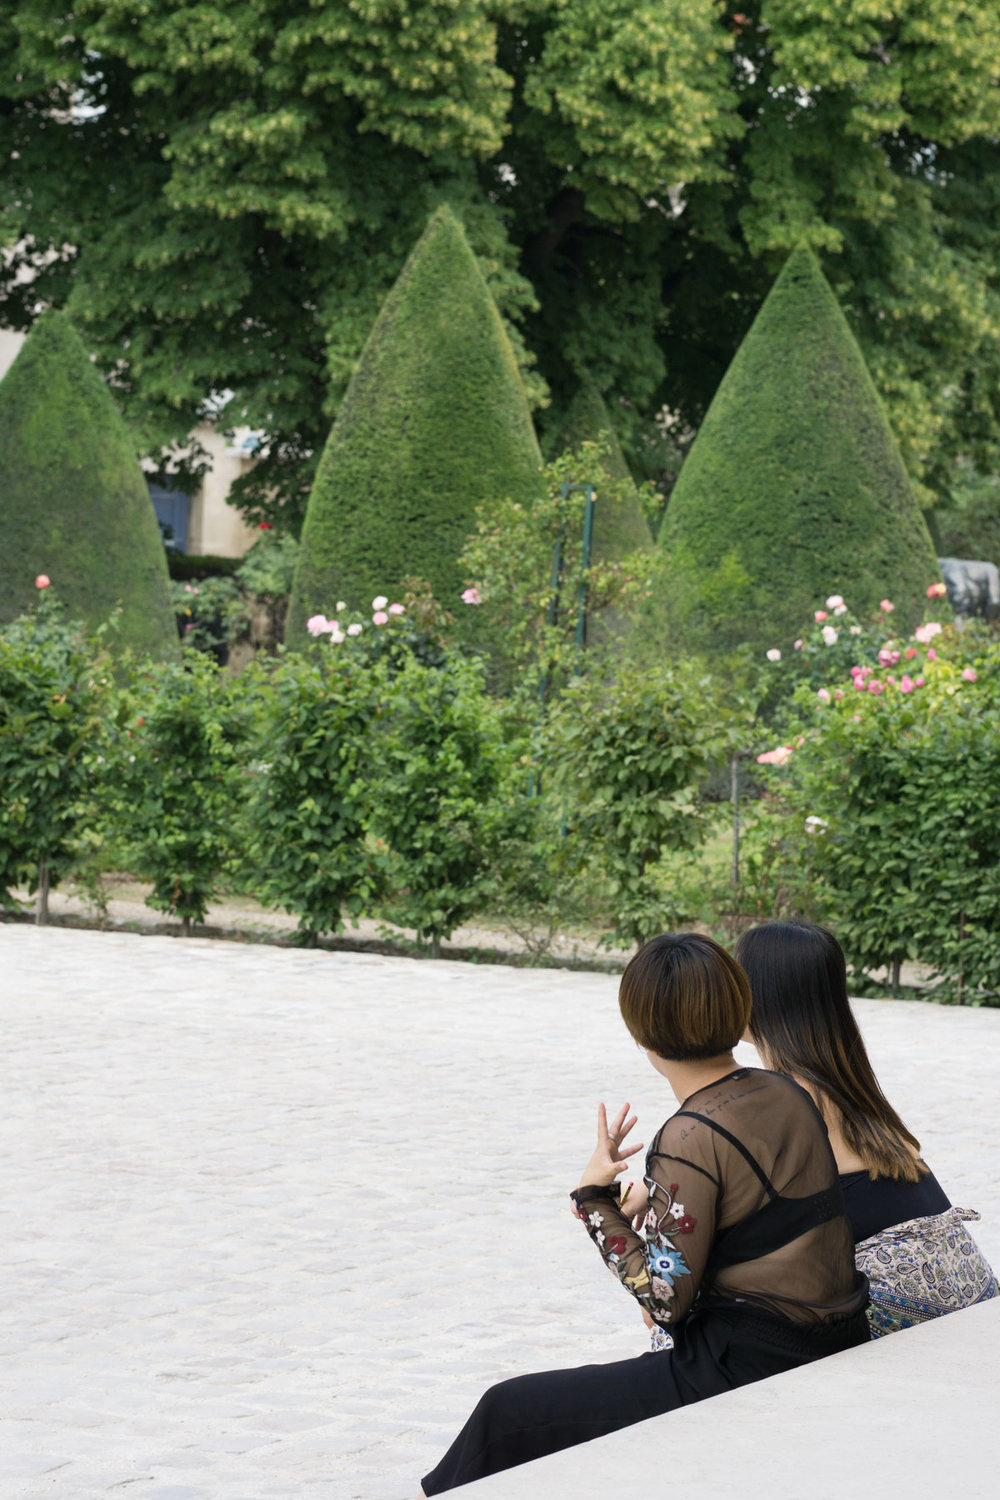 Fellow lover of art, culture and flowers? Discover the tranquil sculpture garden at the Musee Rodin, filled with striking sculptures and gorgeous roses. | Musee Rodin - Le Jardin de Sculptures | Rose Garden | Paris Travel Tips